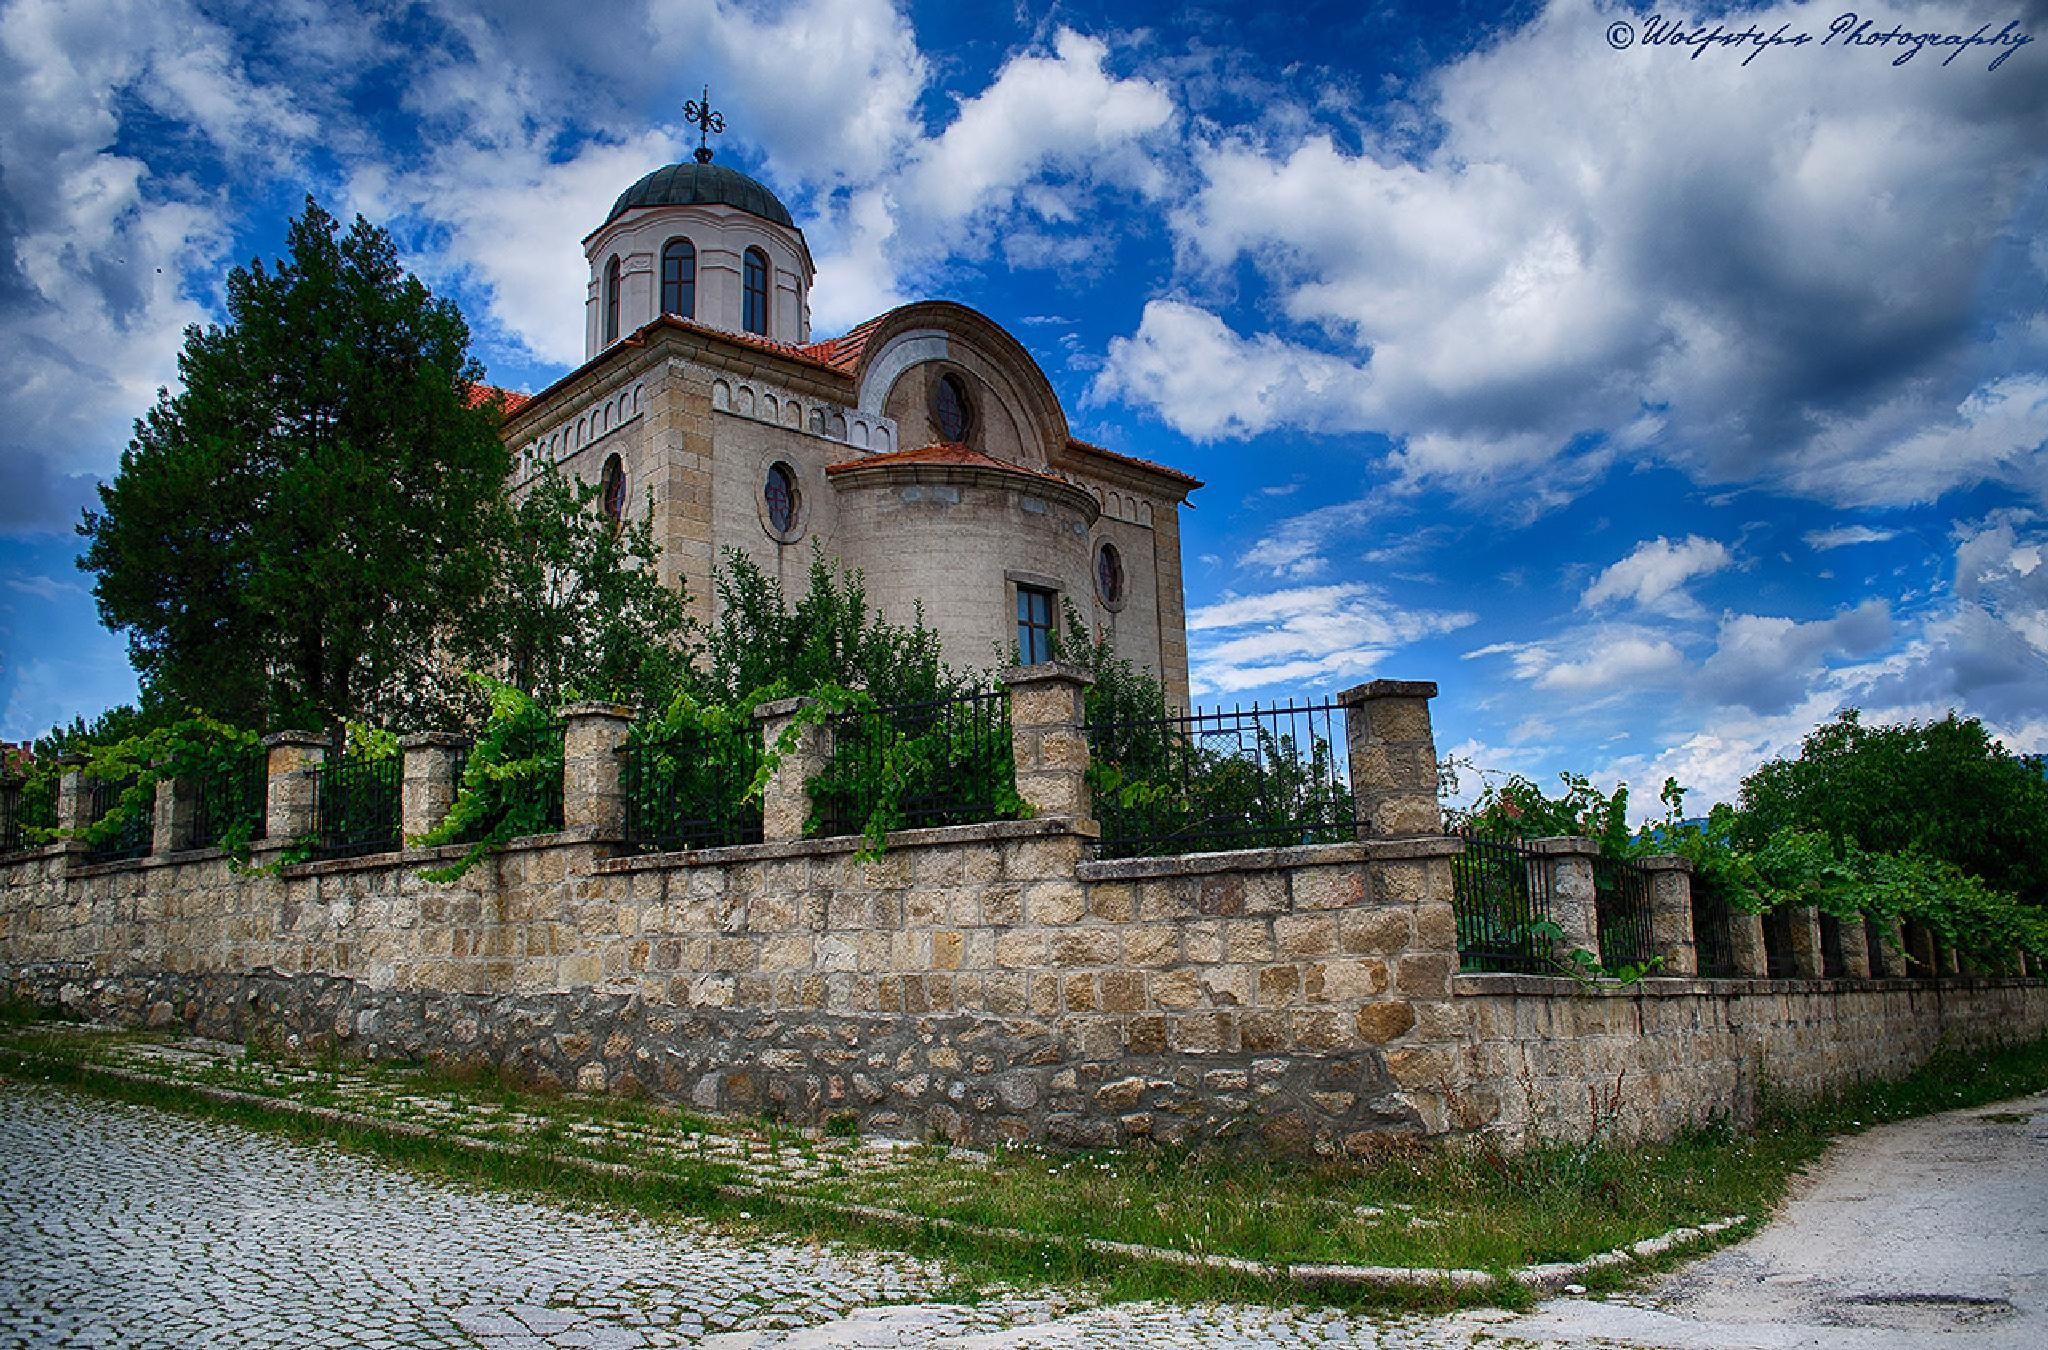 House of God by WolfstepsPhotography